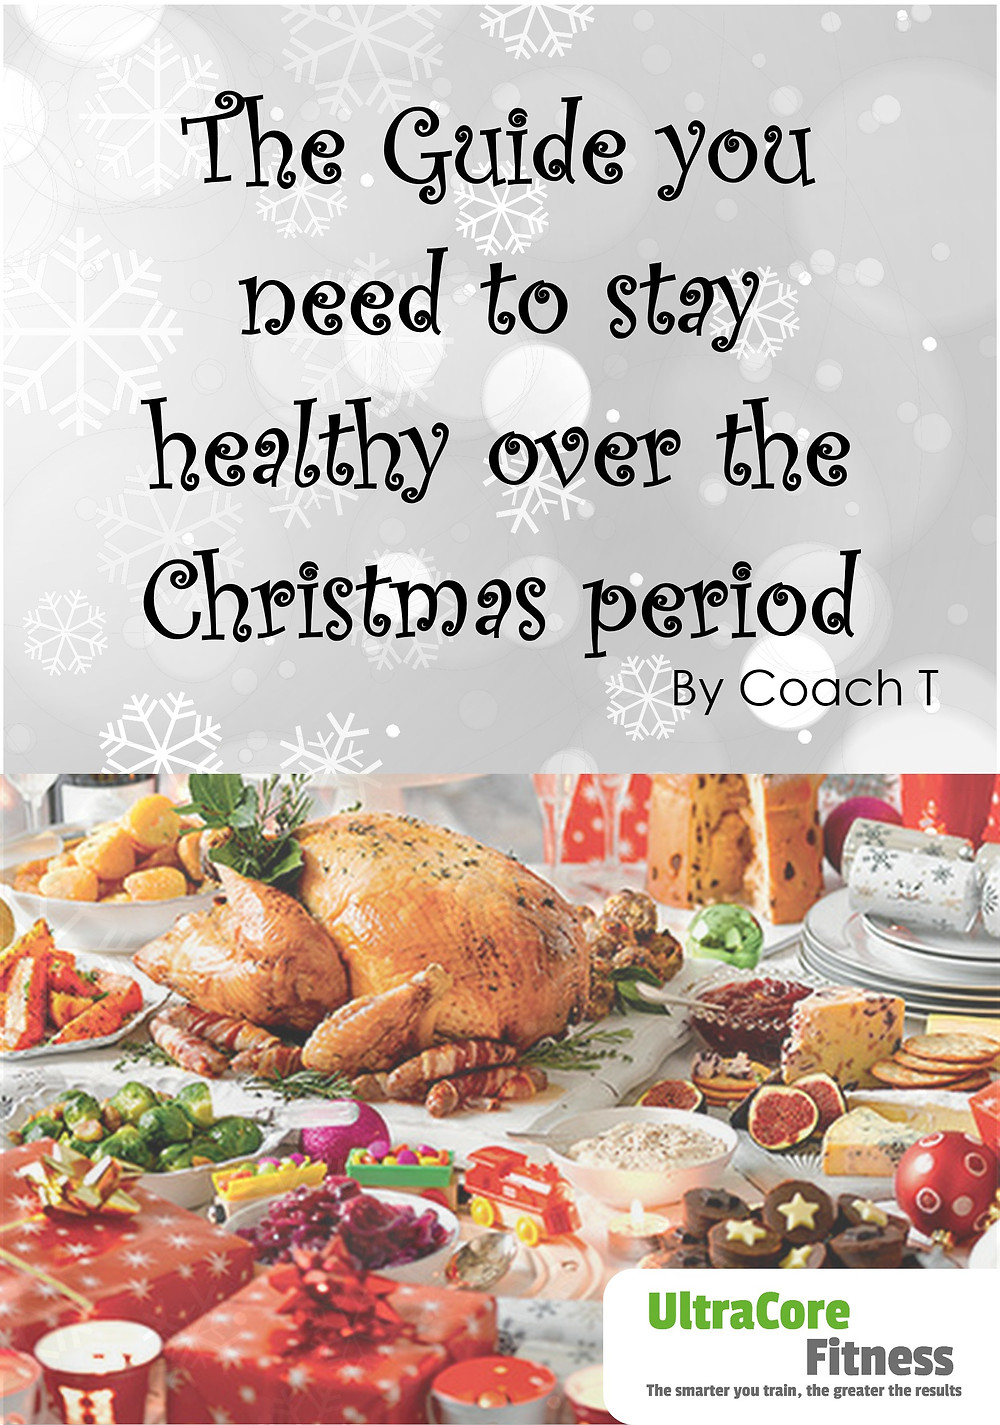 The Guide you need to stay healthy over the Christmas periodThe Guide you need to stay healthy over the Christmas period